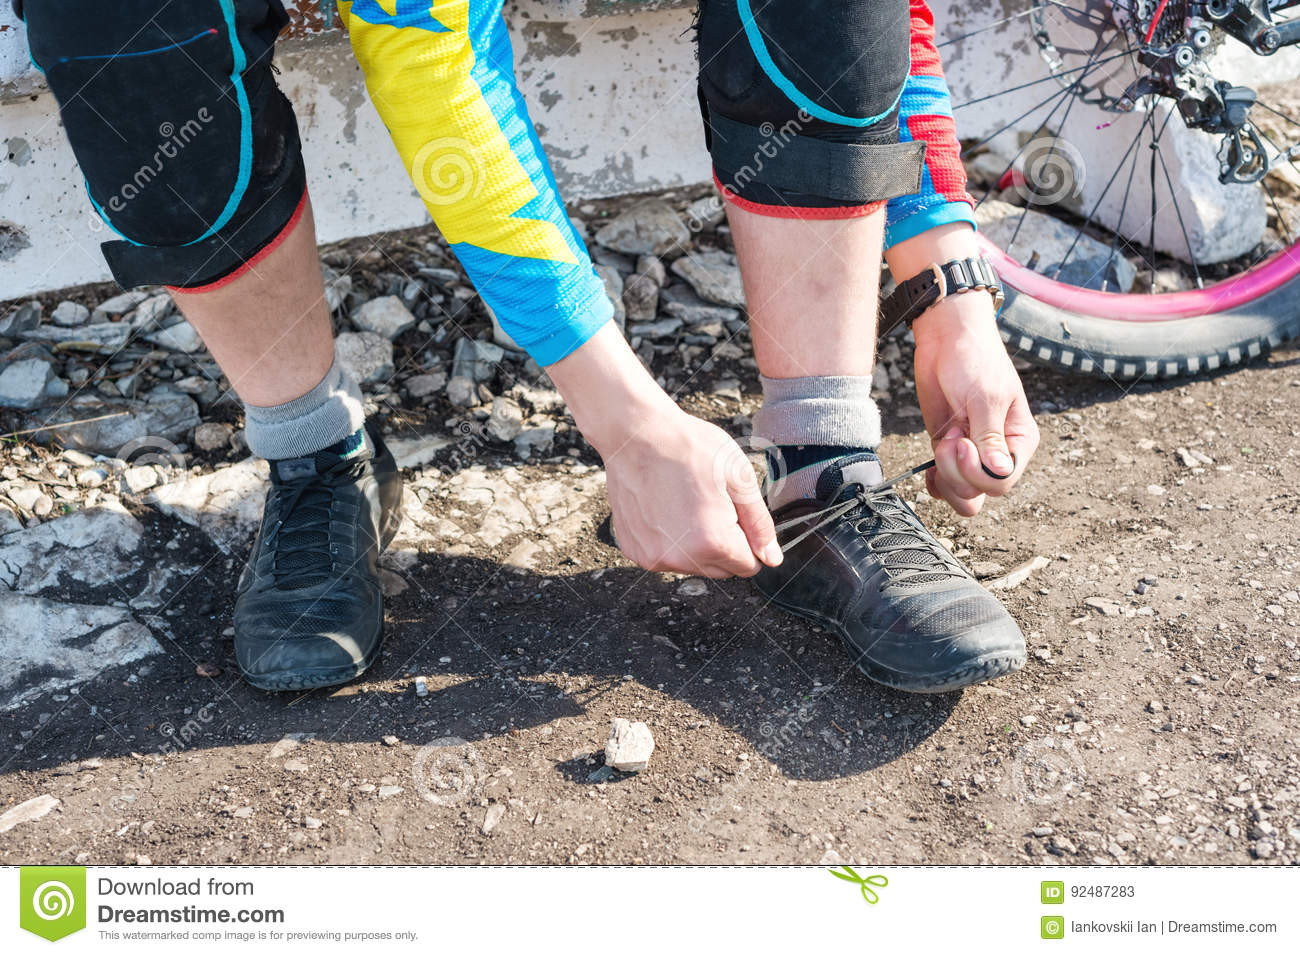 Male racer mtb cyclist preparing for race tying shoelaces